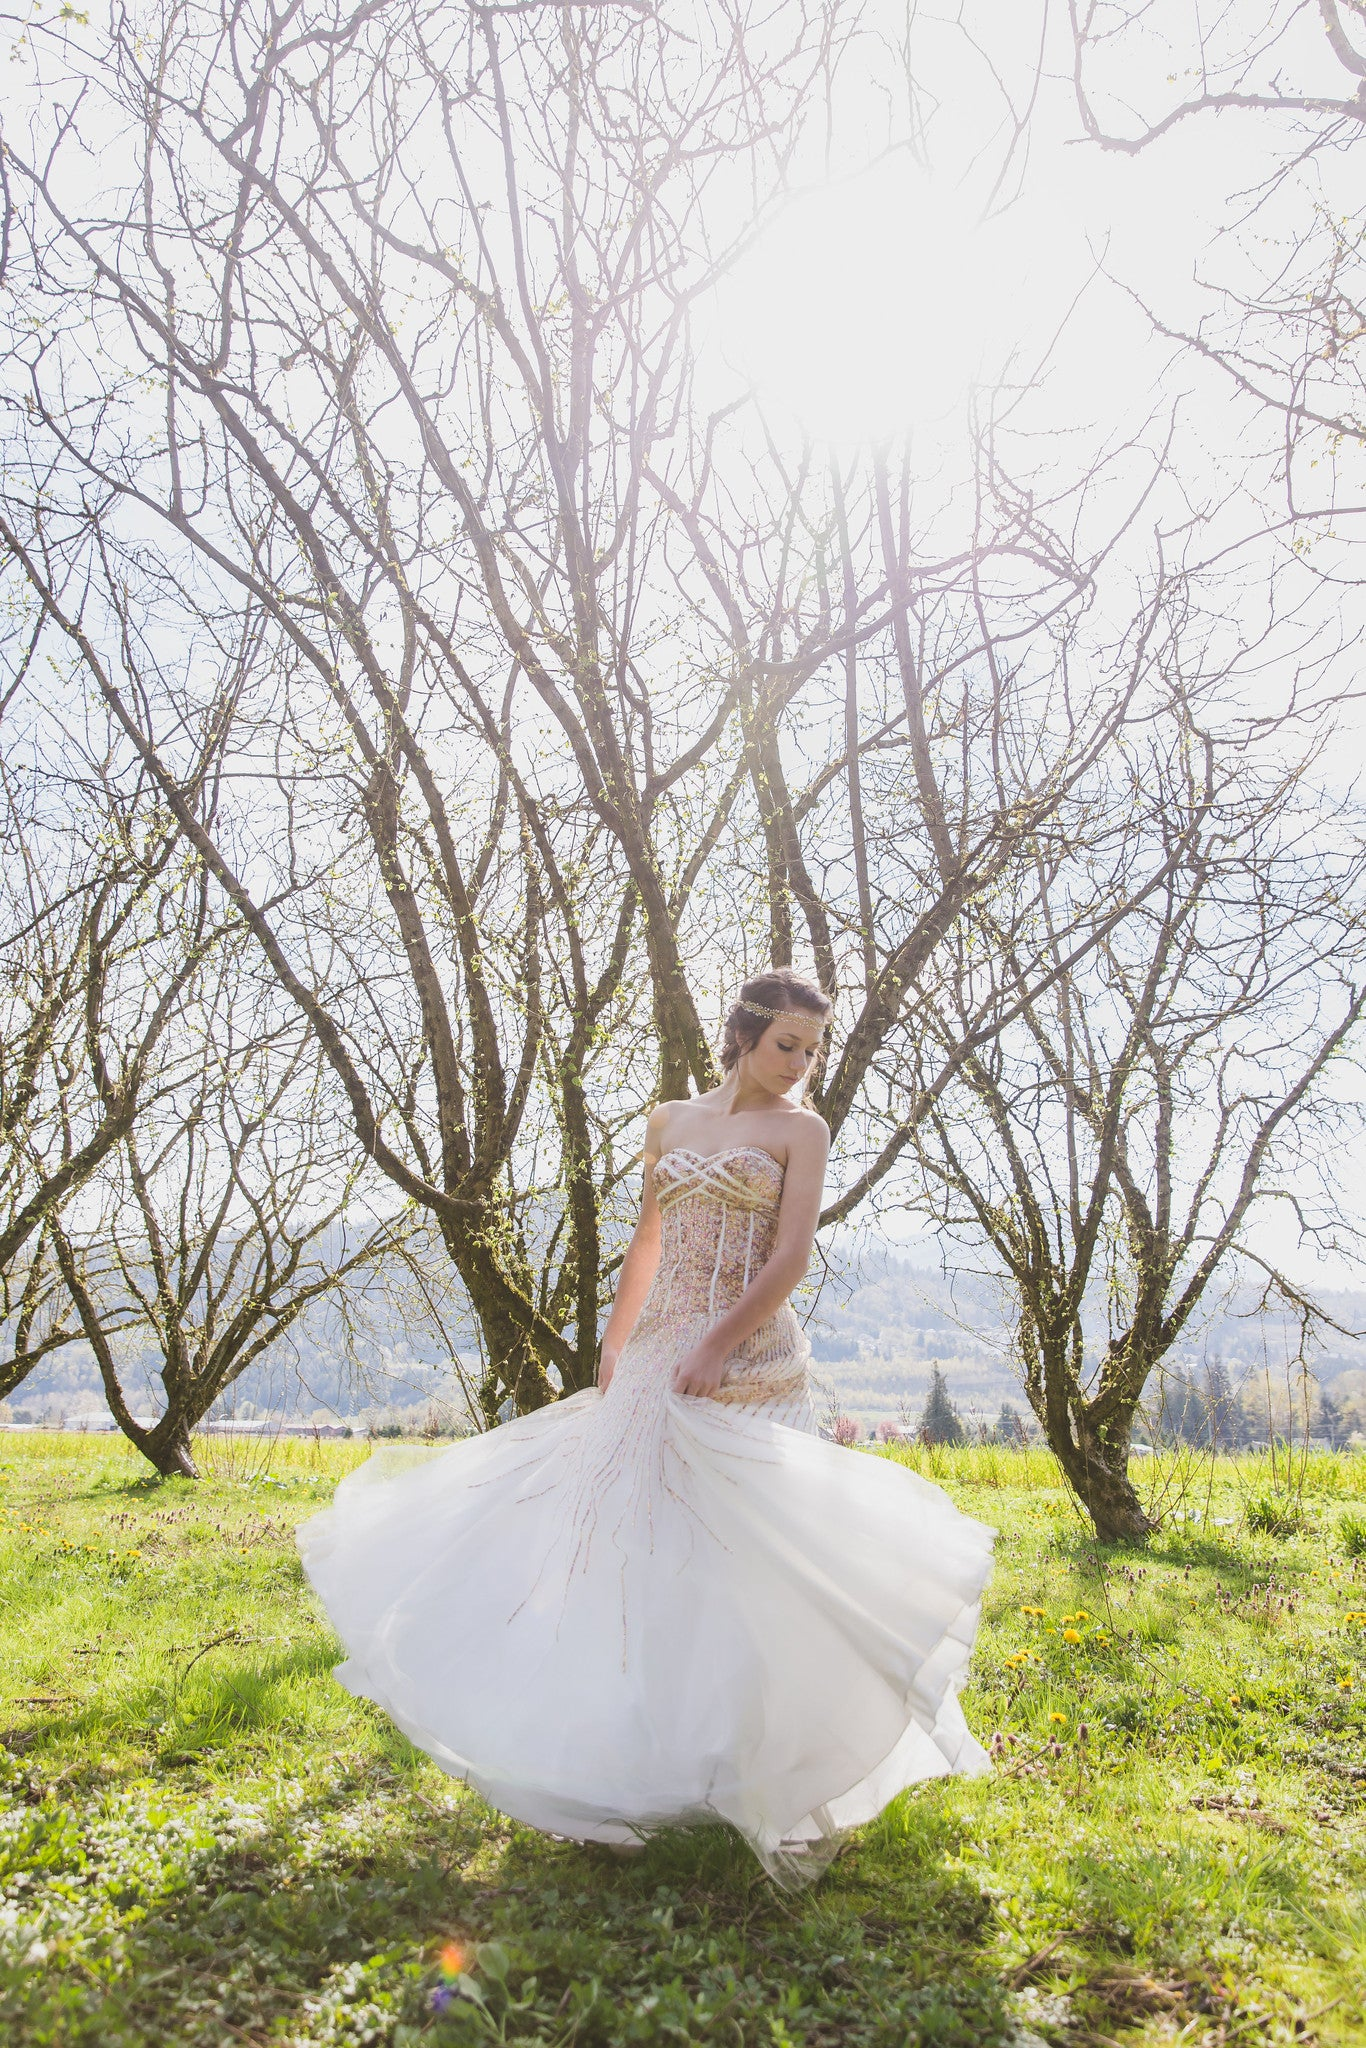 Fall 2016 Bridal Collection & Styled Shoot - Chilliwack, BC